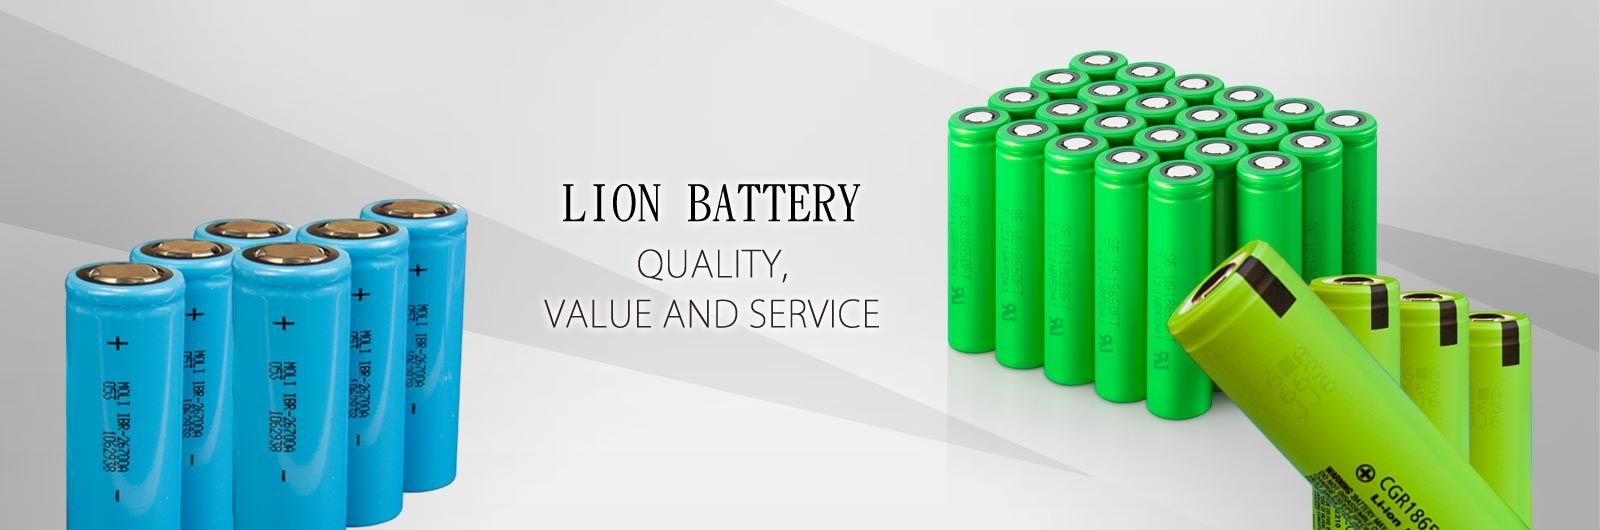 We Manufacture Large Scale Lithium Ion Batteries In Delhi Indiatelemaxindia Is A Best Manufac Cell Phone Companies Lithium Ion Batteries